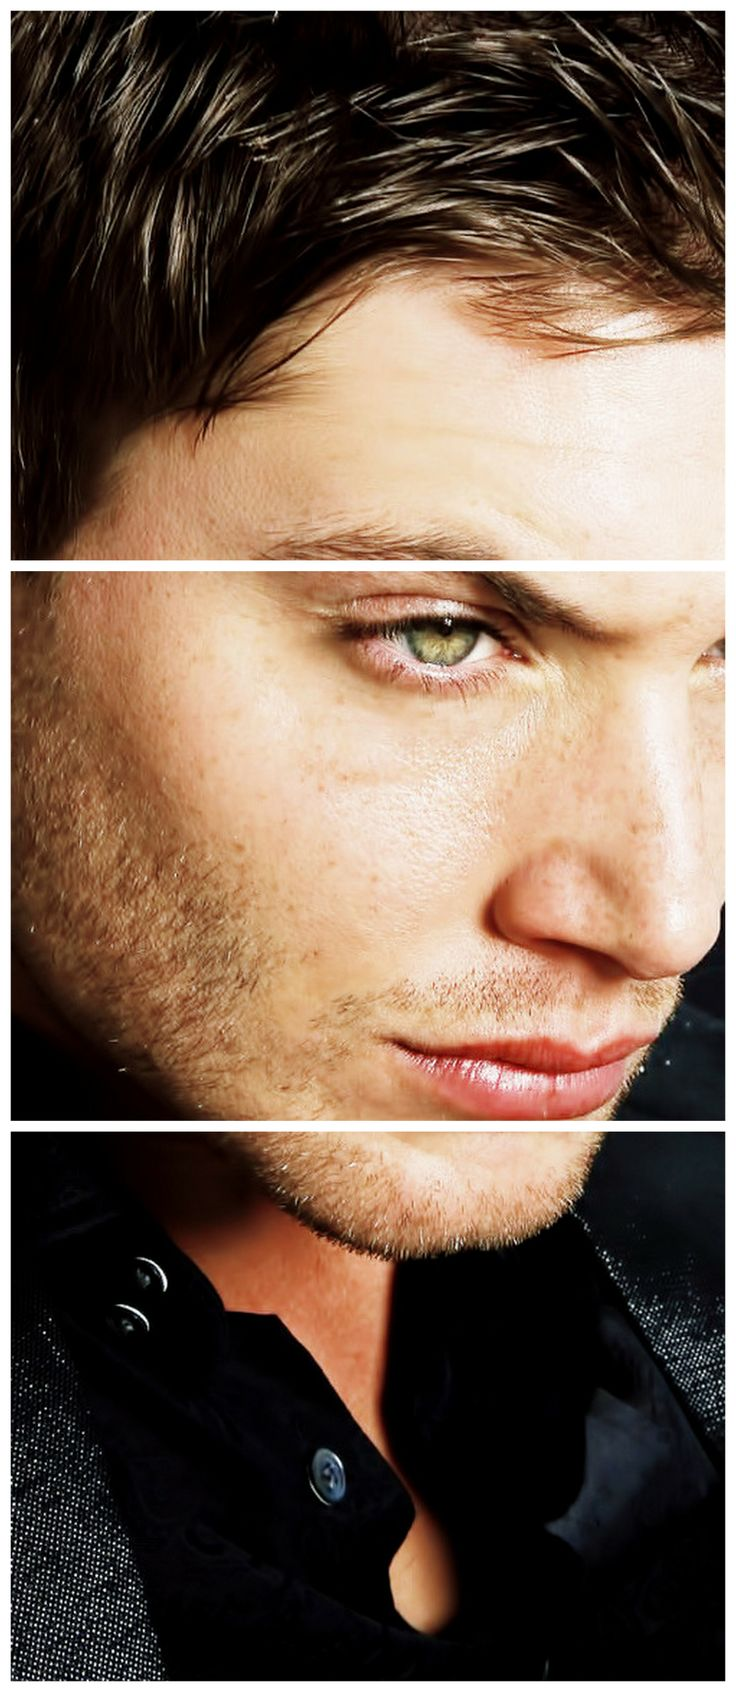 #JensenAckles photo shoot #stunning